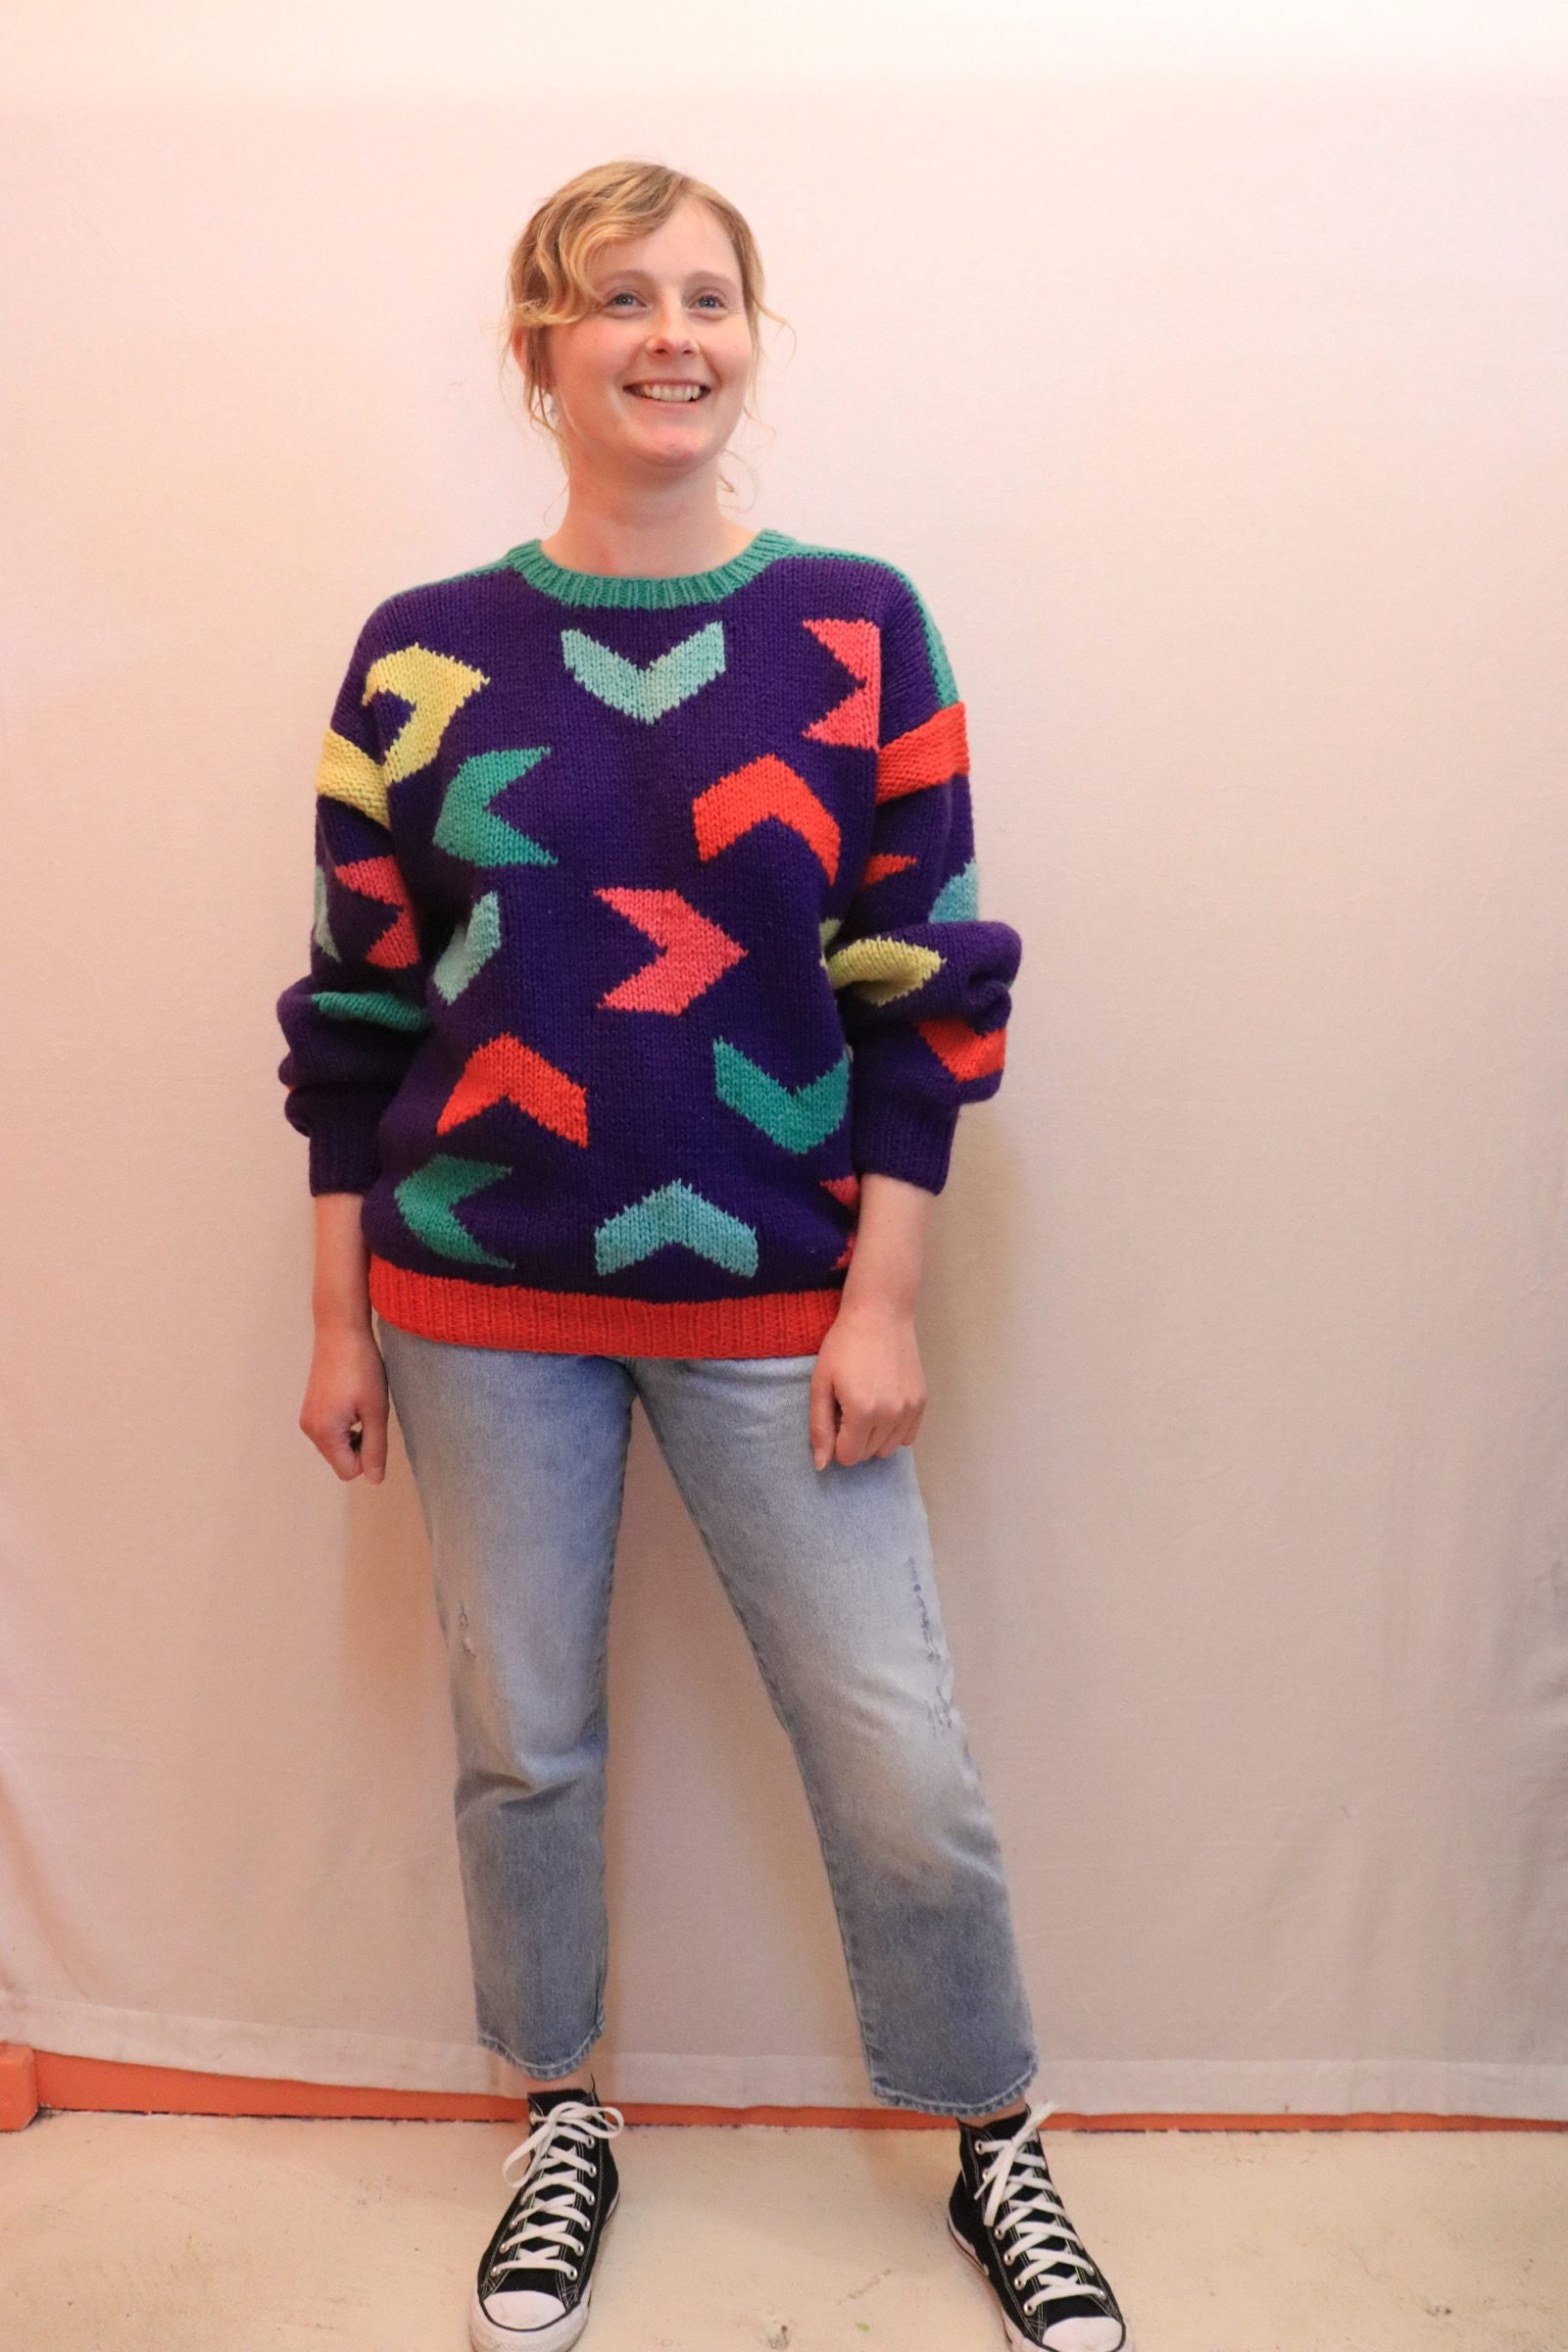 80s/90s wool knitted jumper